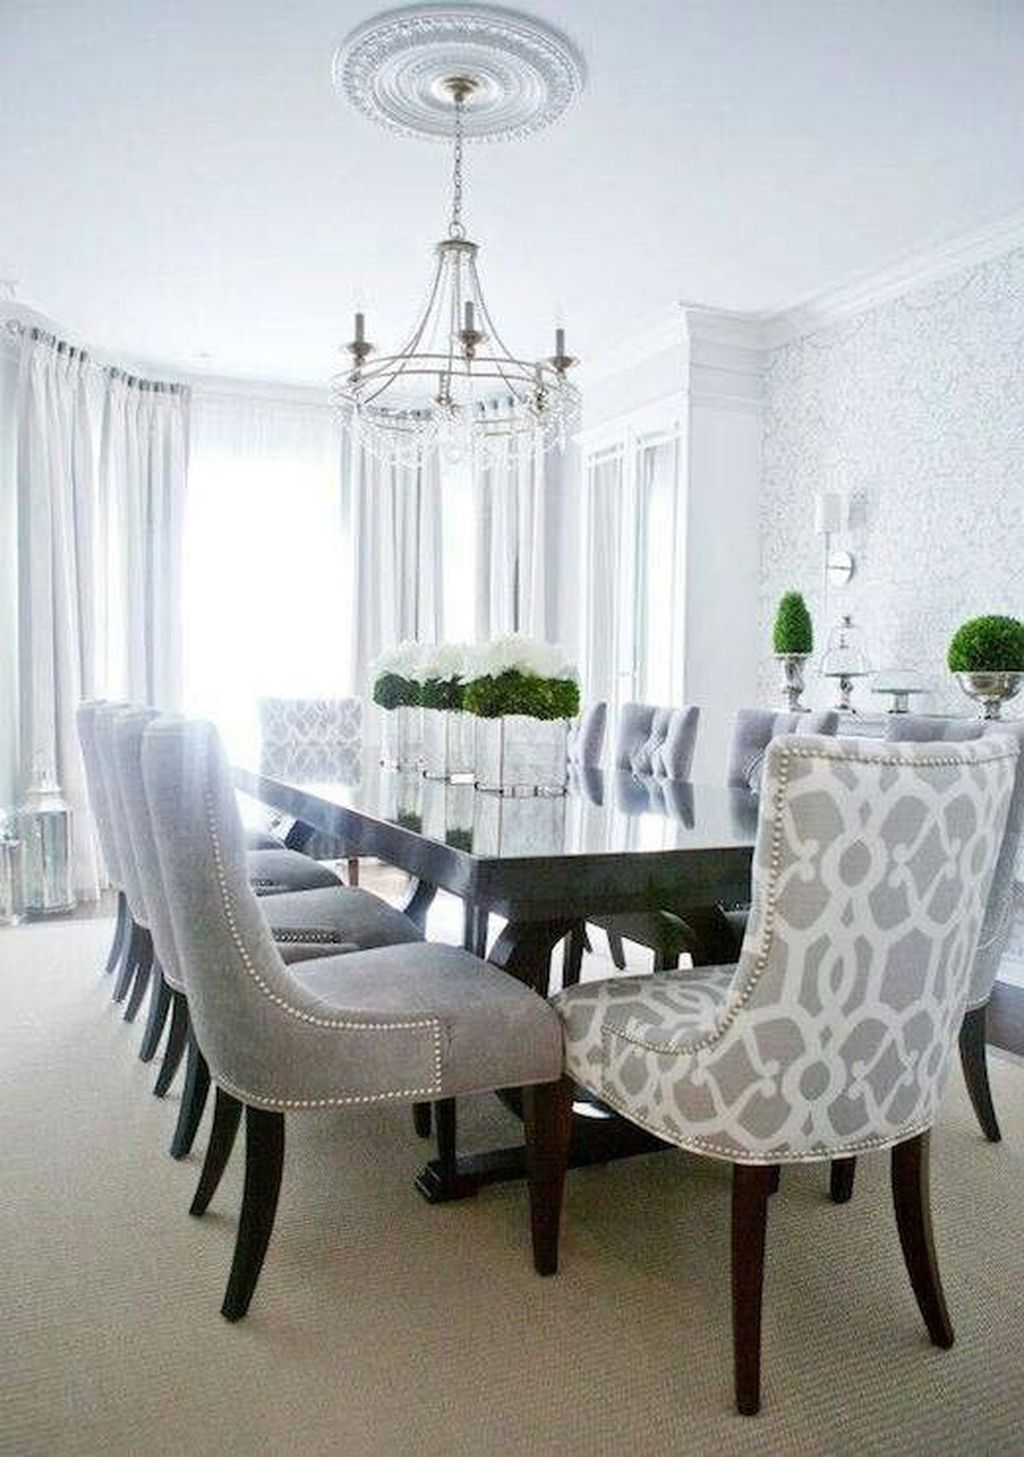 Bay window decor ideas  pin by riley gatewood on renovating principles in   pinterest